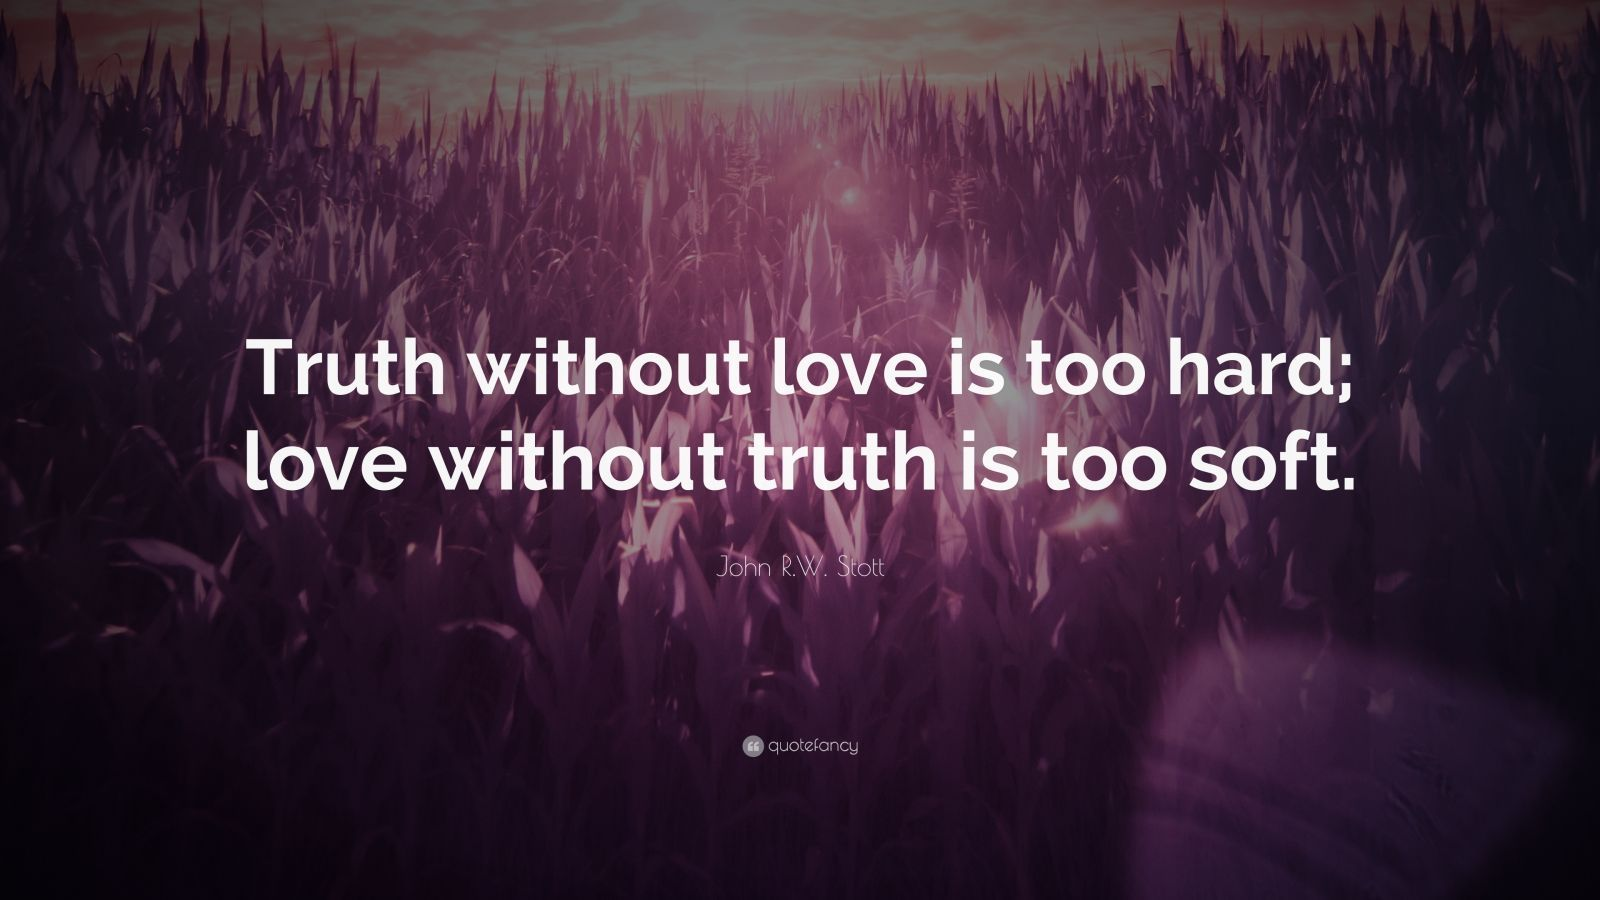 John R W Stott Quote Truth Without Love Is Too Hard Love Without Truth Is Too Soft Tom Hiddleston Quotes Drake Quotes Music Quotes